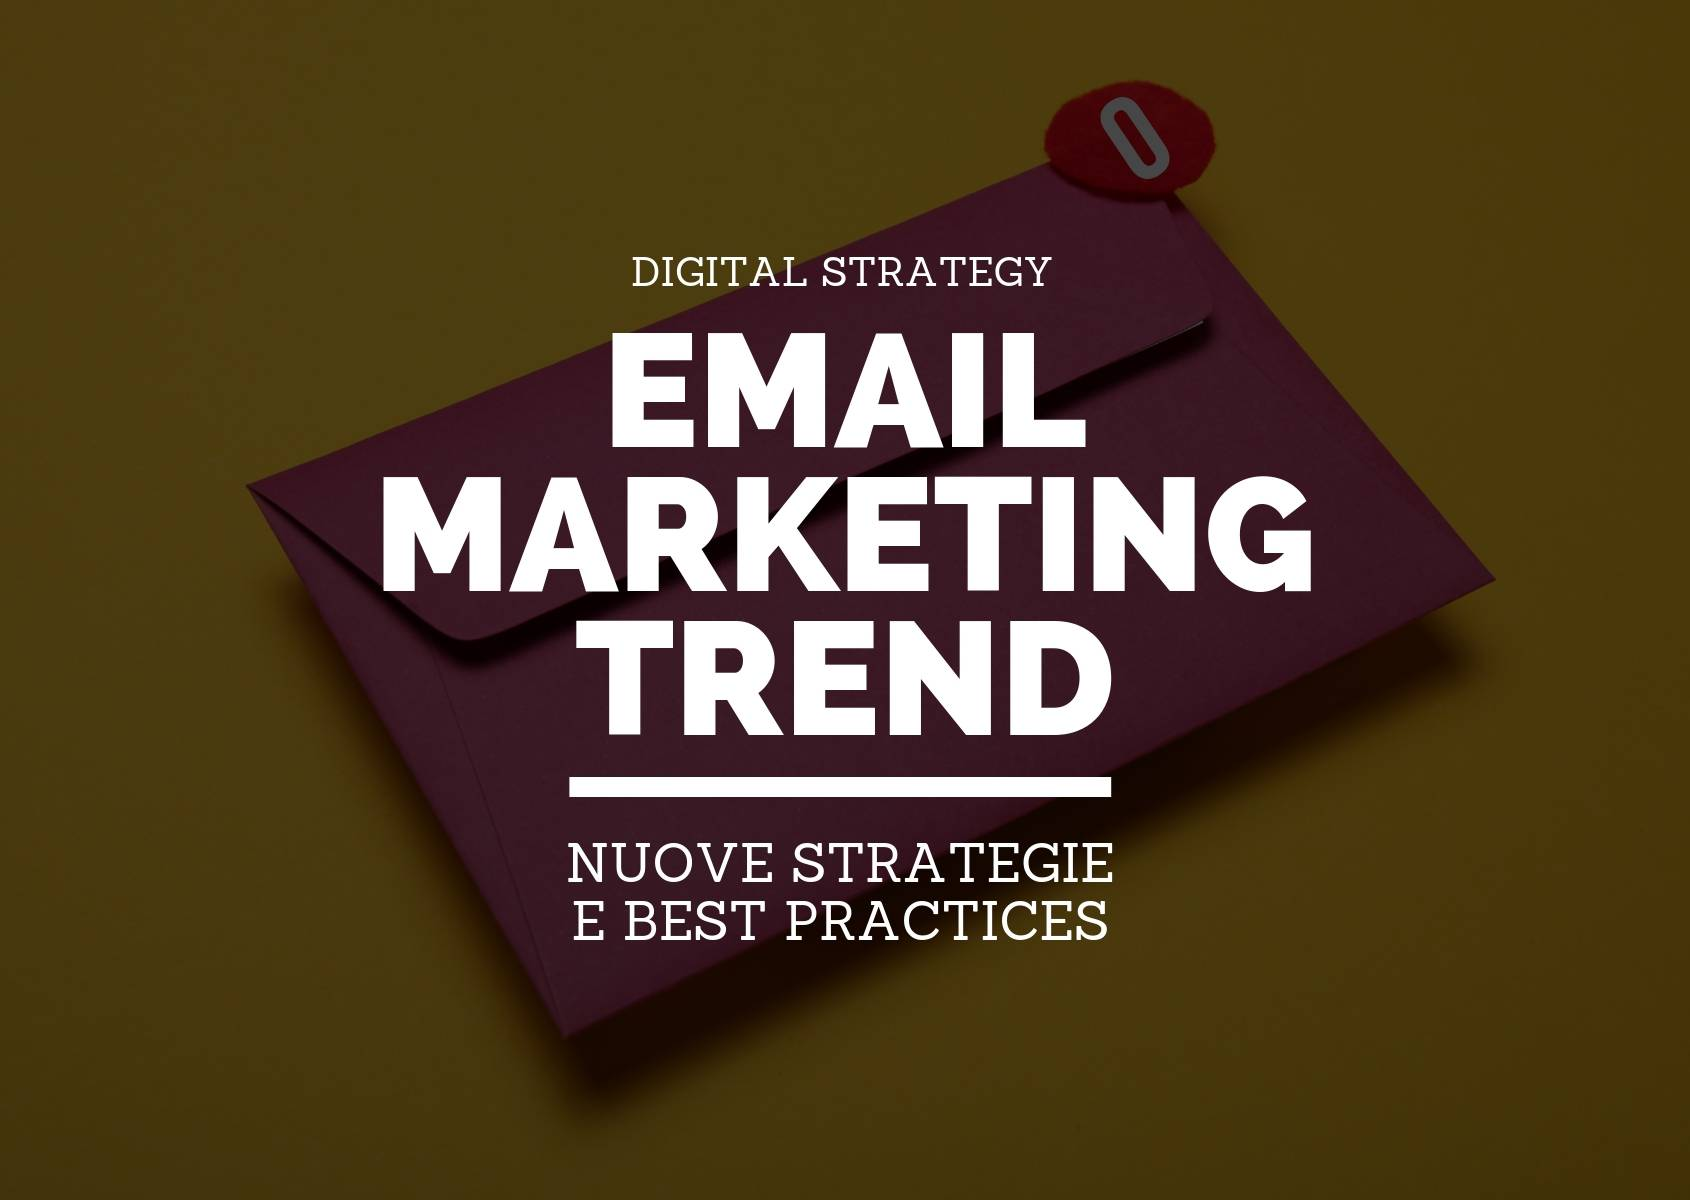 Email marketing 2019: trend, nuove strategie e best practices